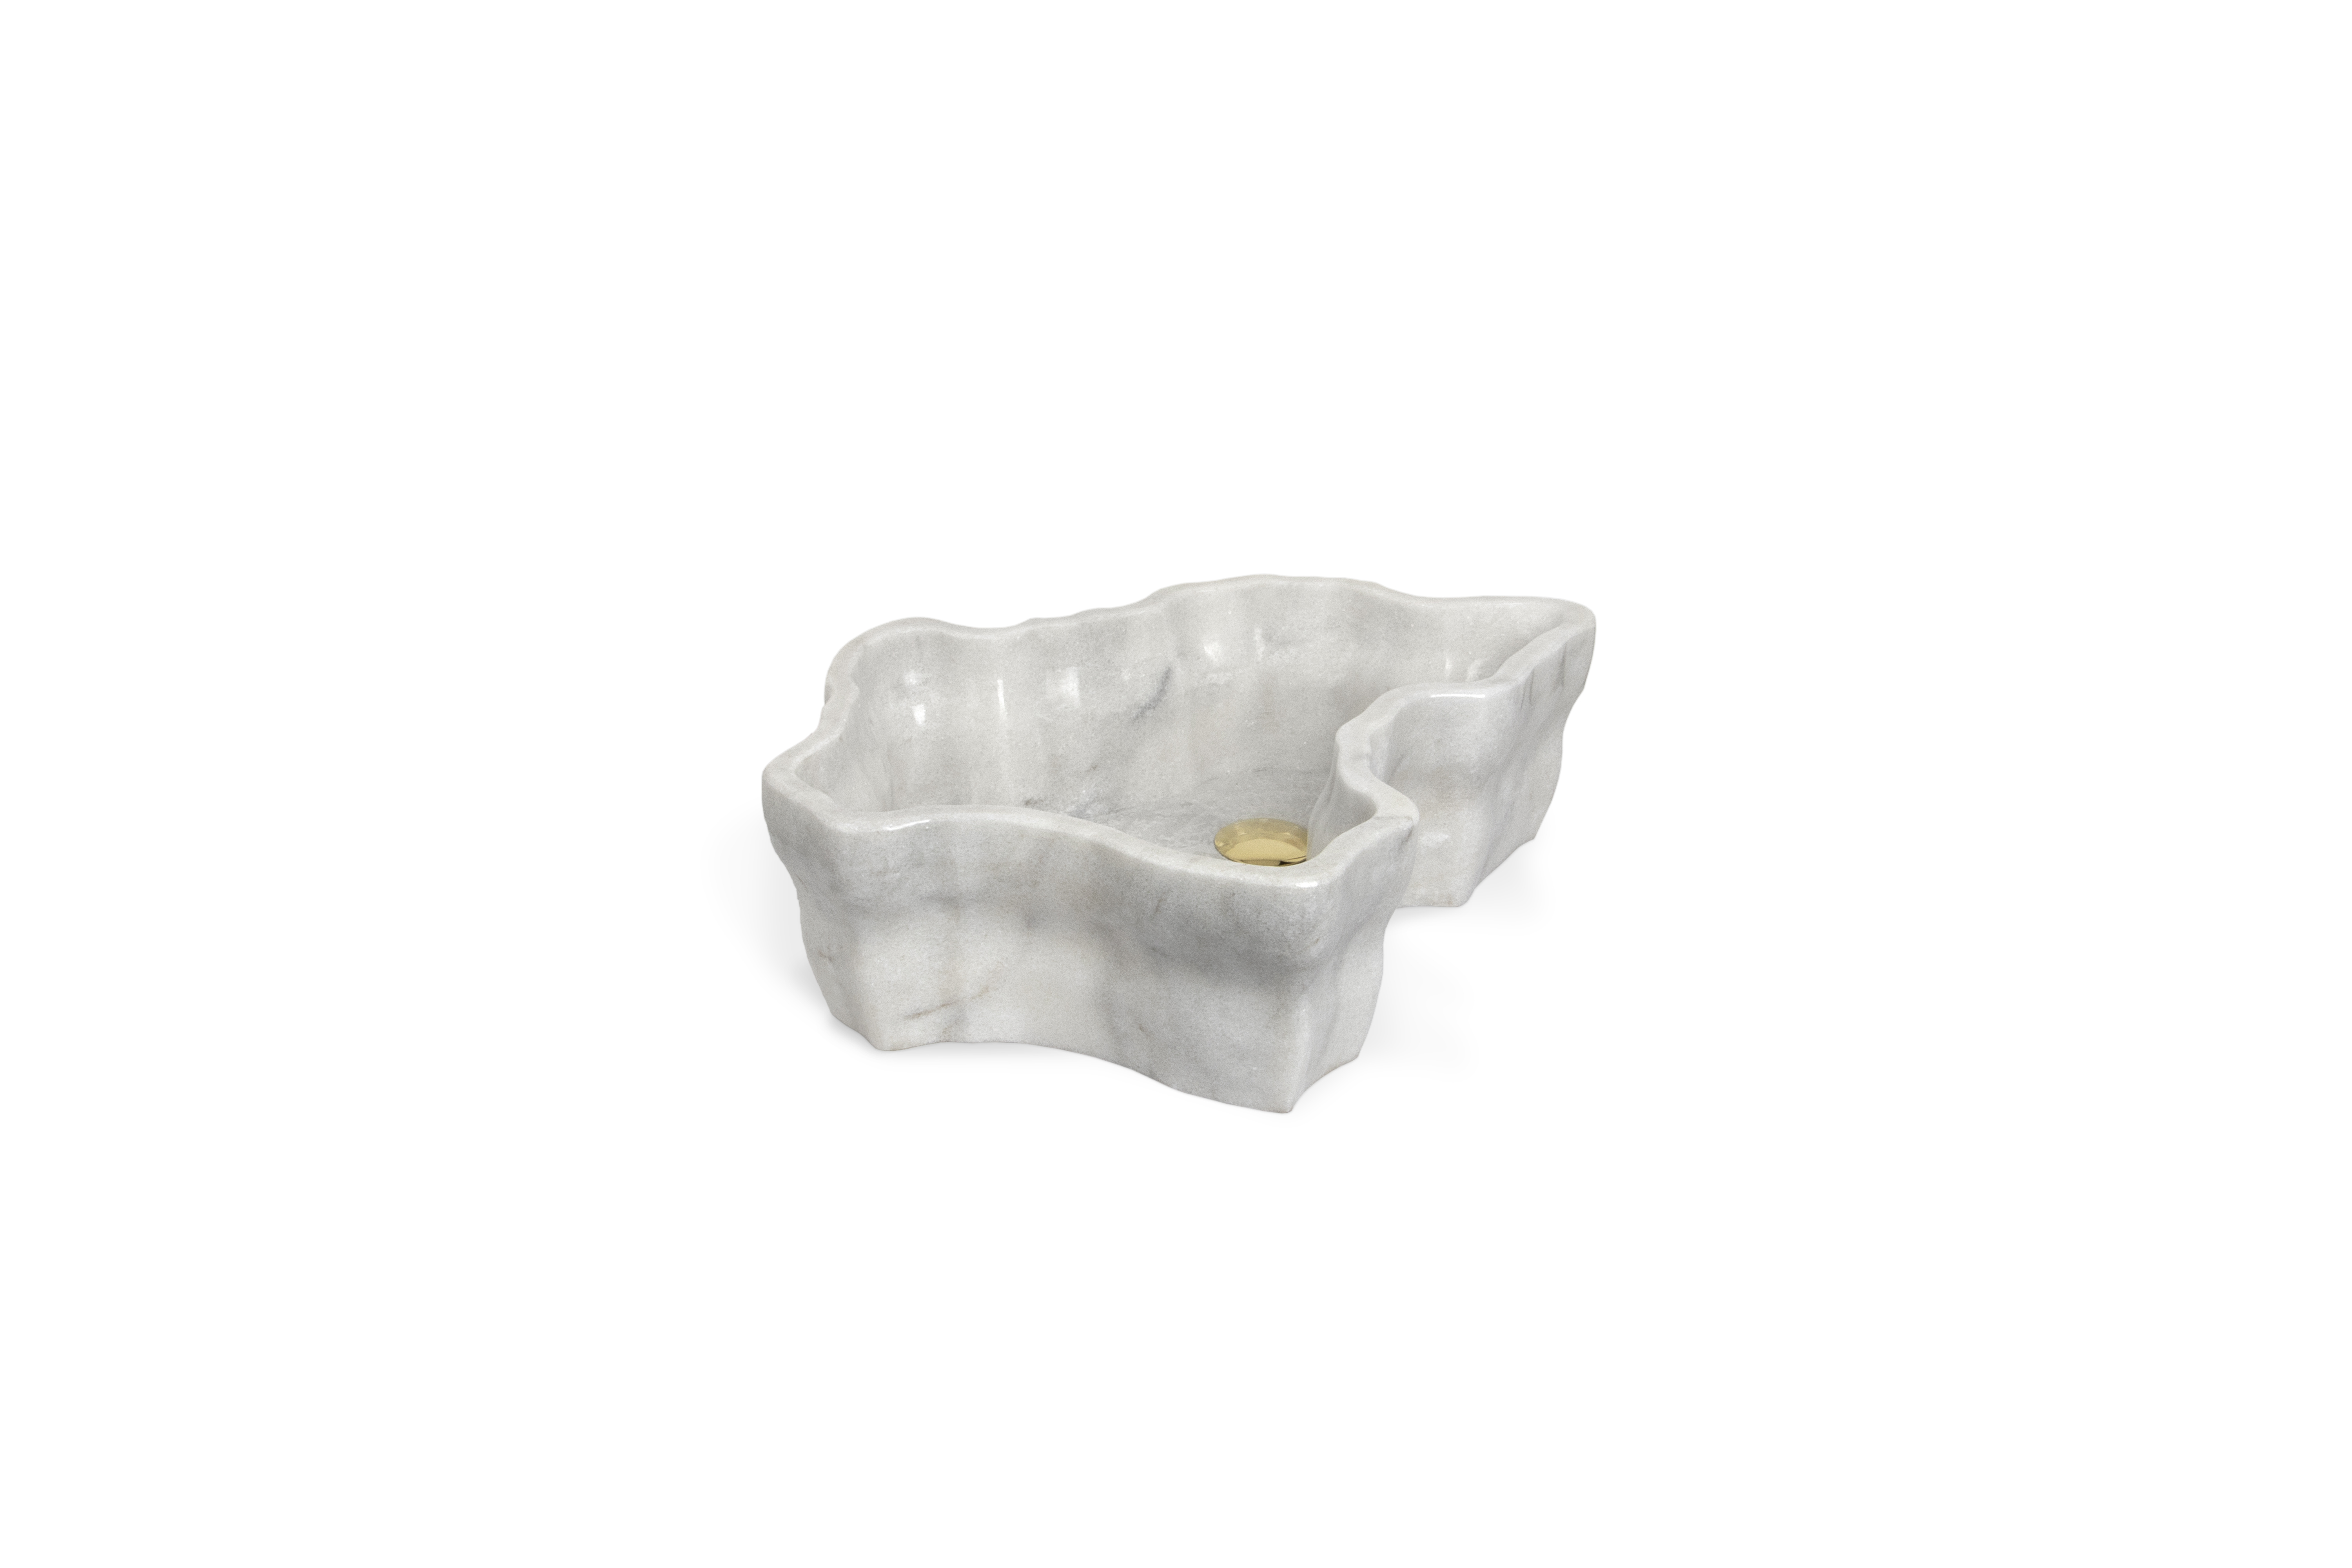 ATO Collection: The Importance Of Details  ato collection ATO Collection: The Importance Of Details eden stone vessel sink 1 HR